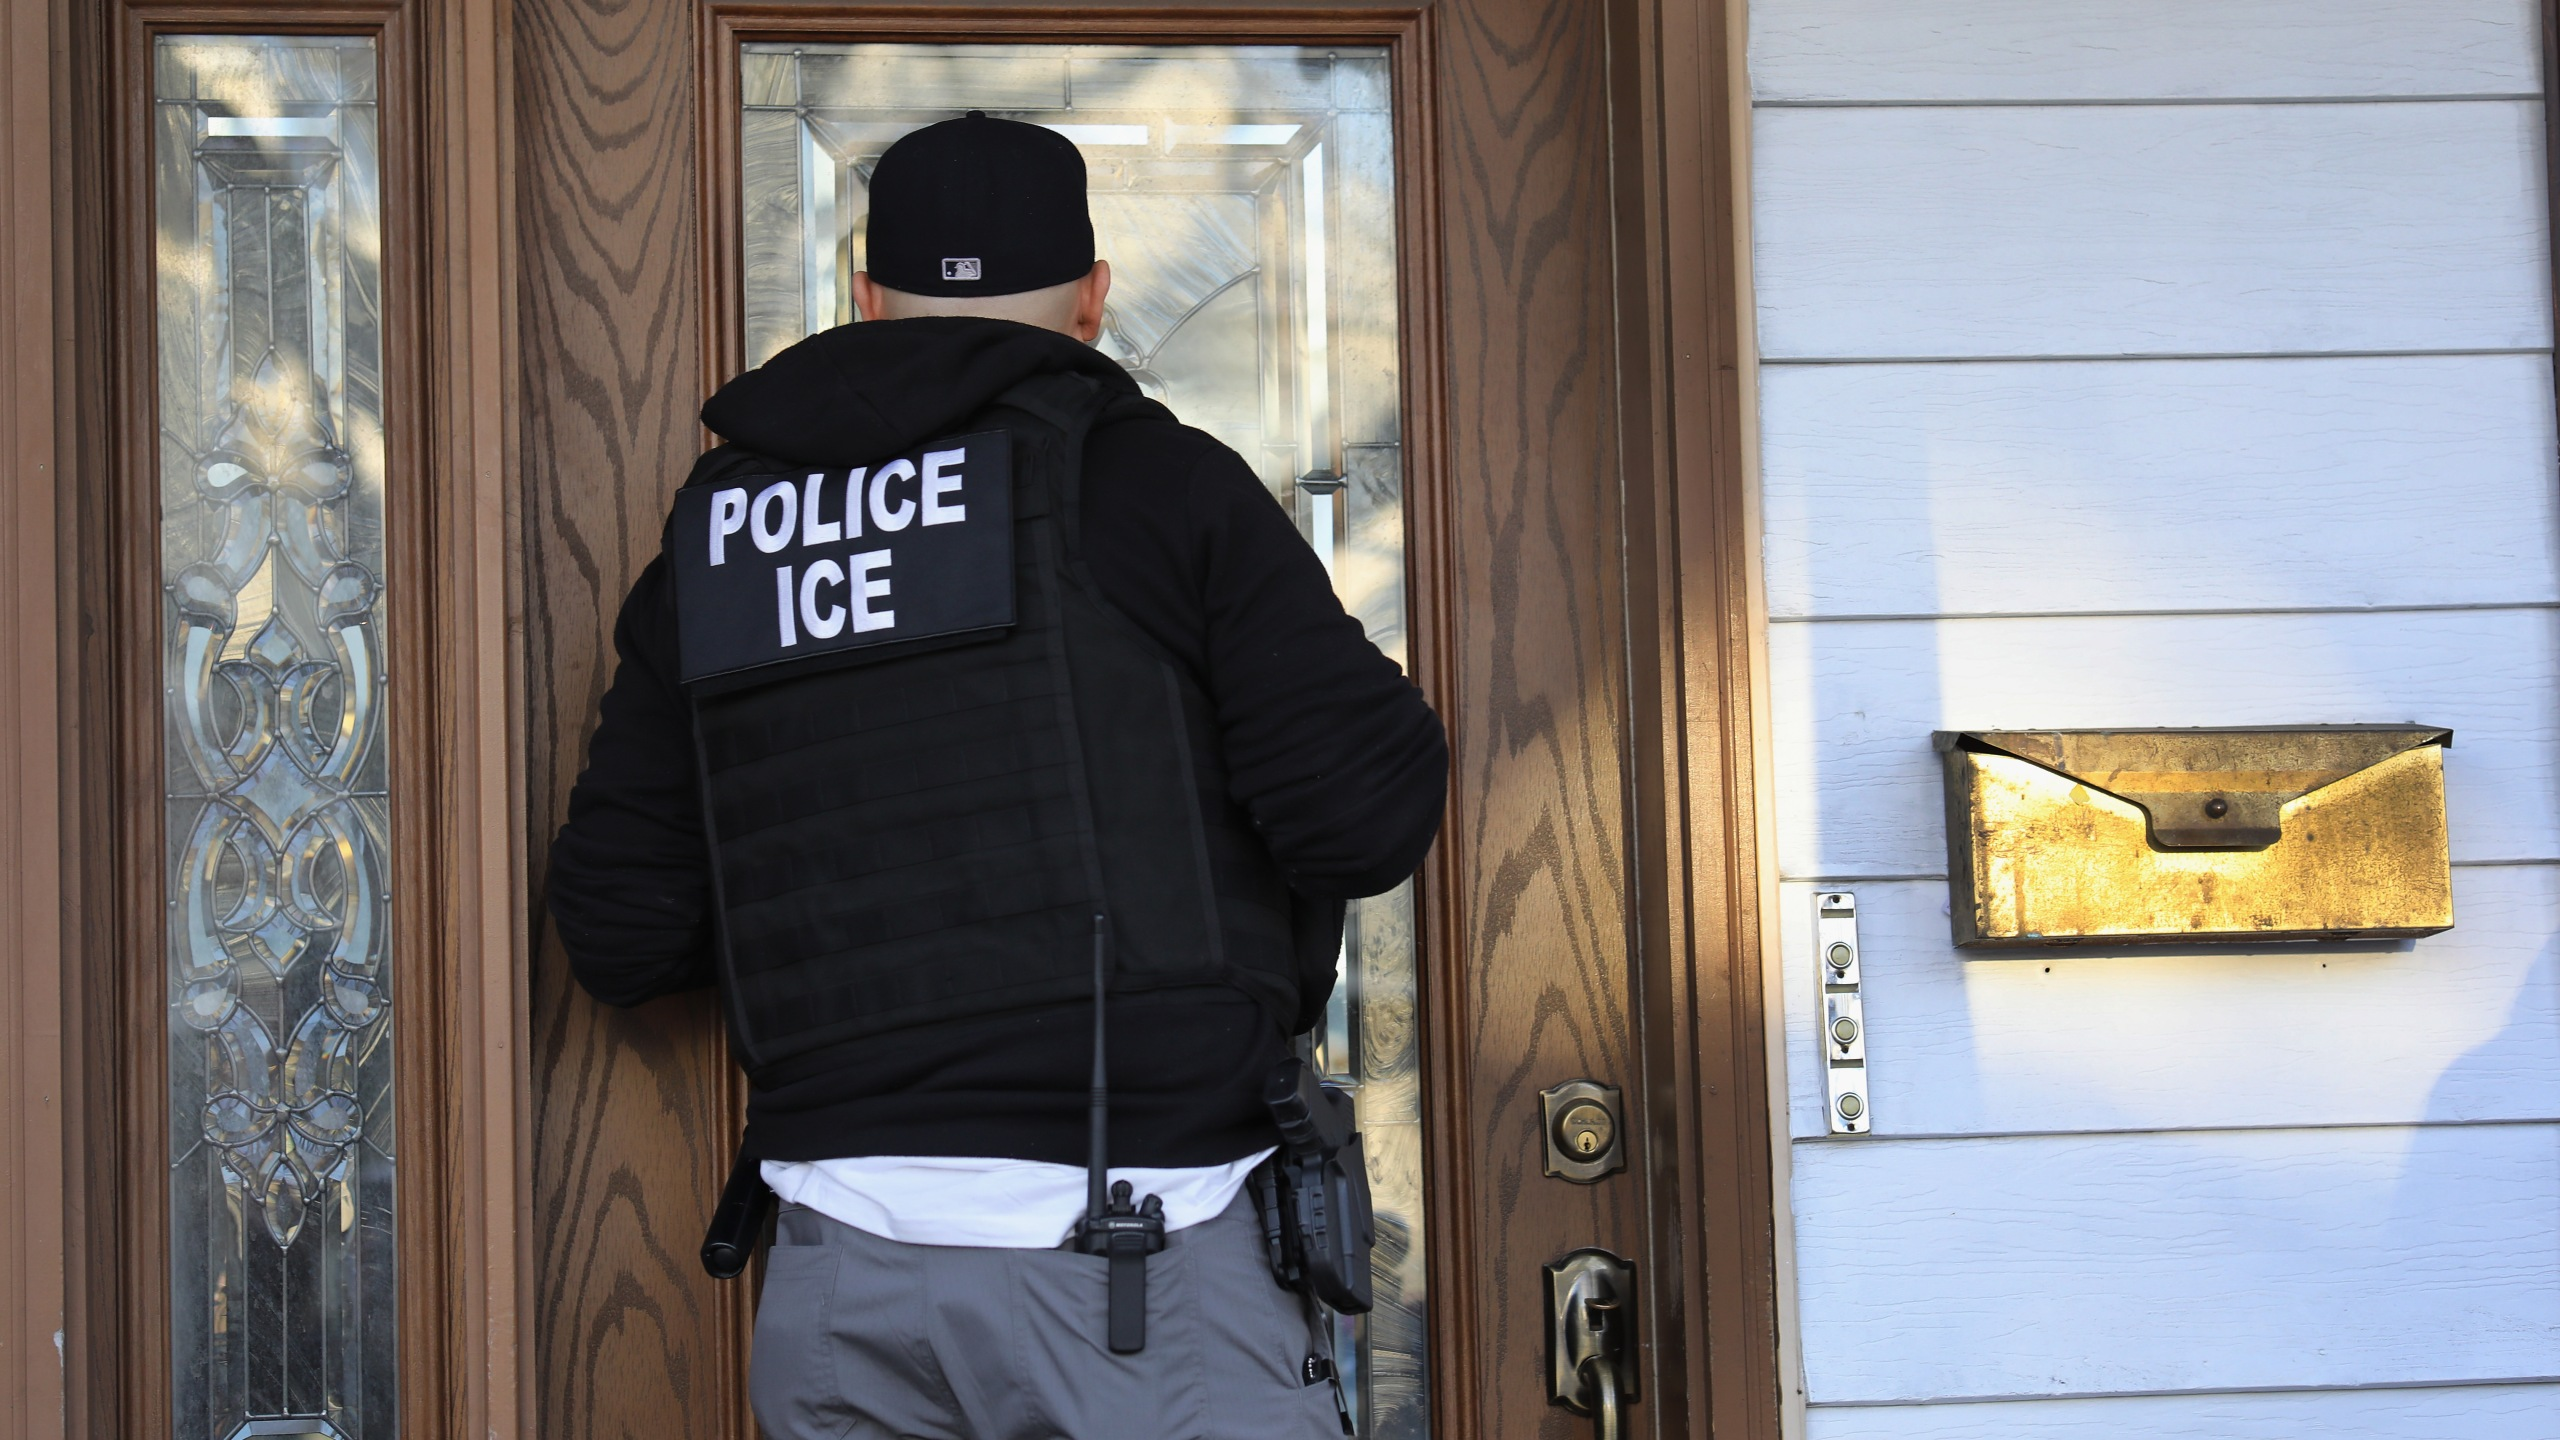 A U.S. Immigration and Customs Enforcement officer arrives to a Flatbush Gardens home in search of an undocumented immigrant on April 11, 2018, in the Brooklyn borough of New York City. (Credit: John Moore/Getty Images)